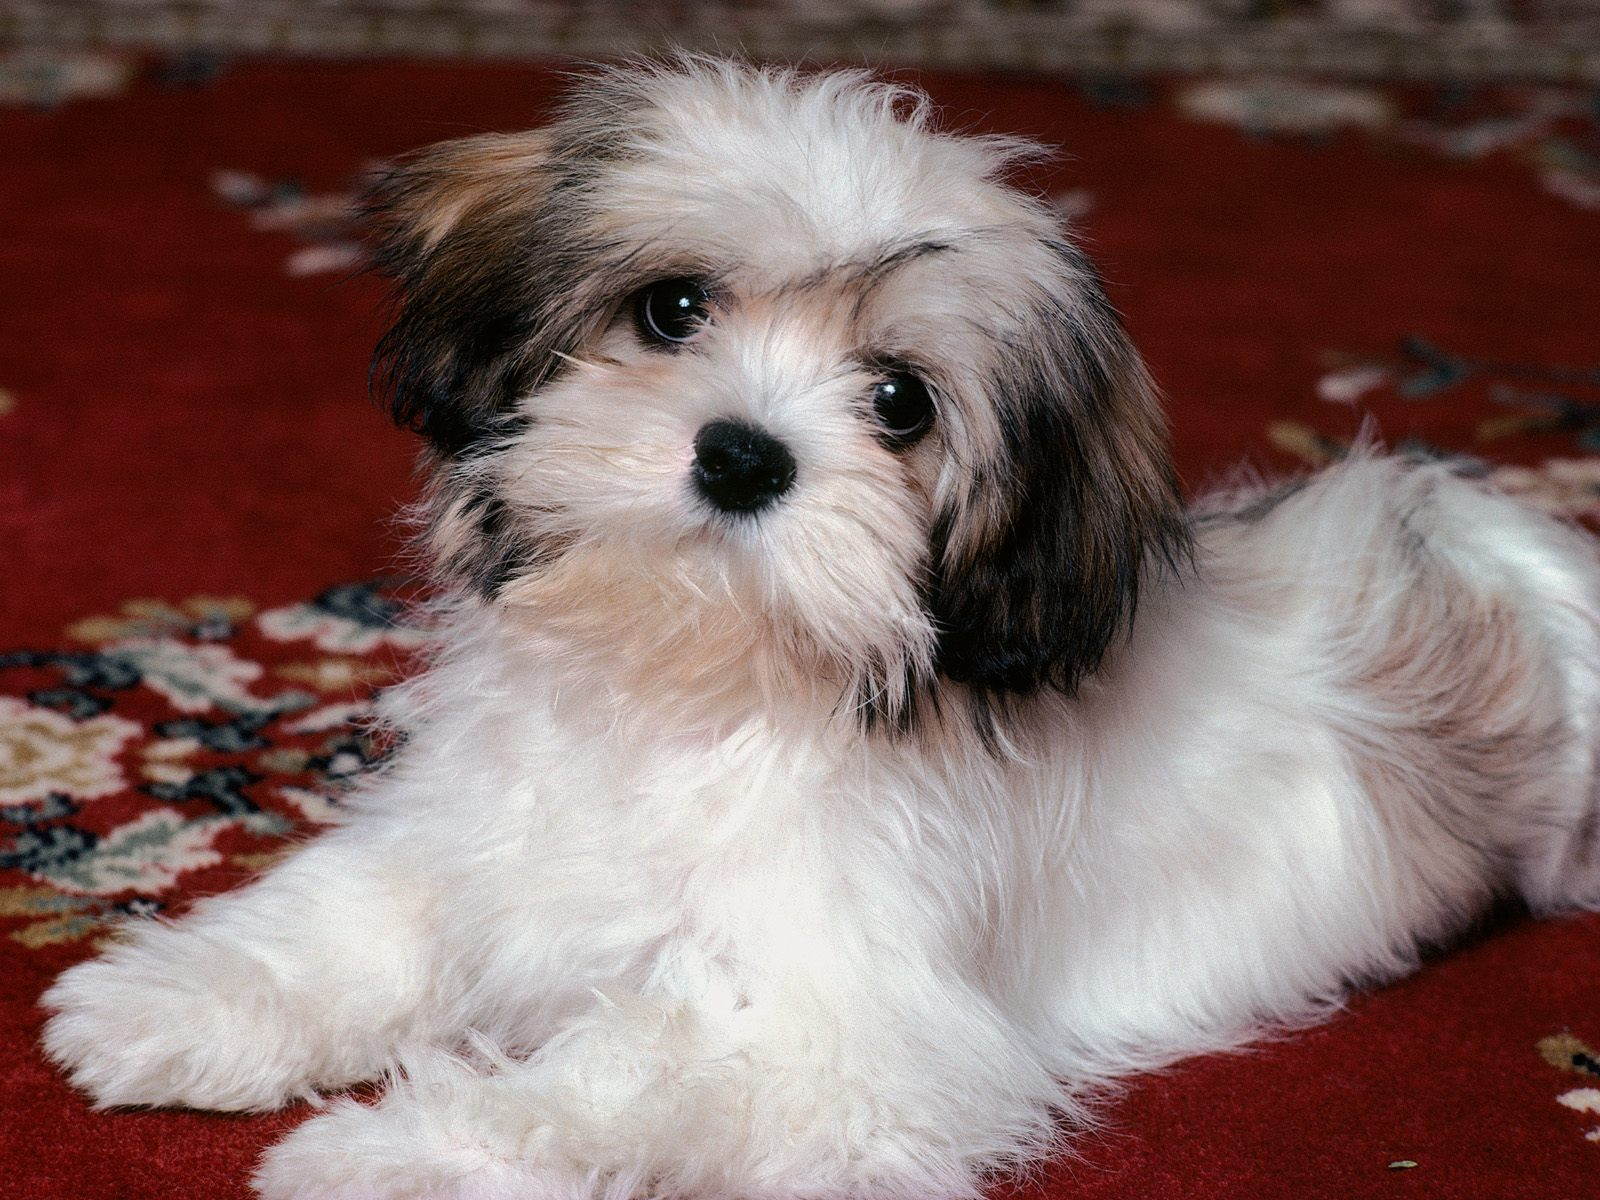 HQ Lhasa Apso Puppy Wallpaper   HQ Wallpapers 1600x1200